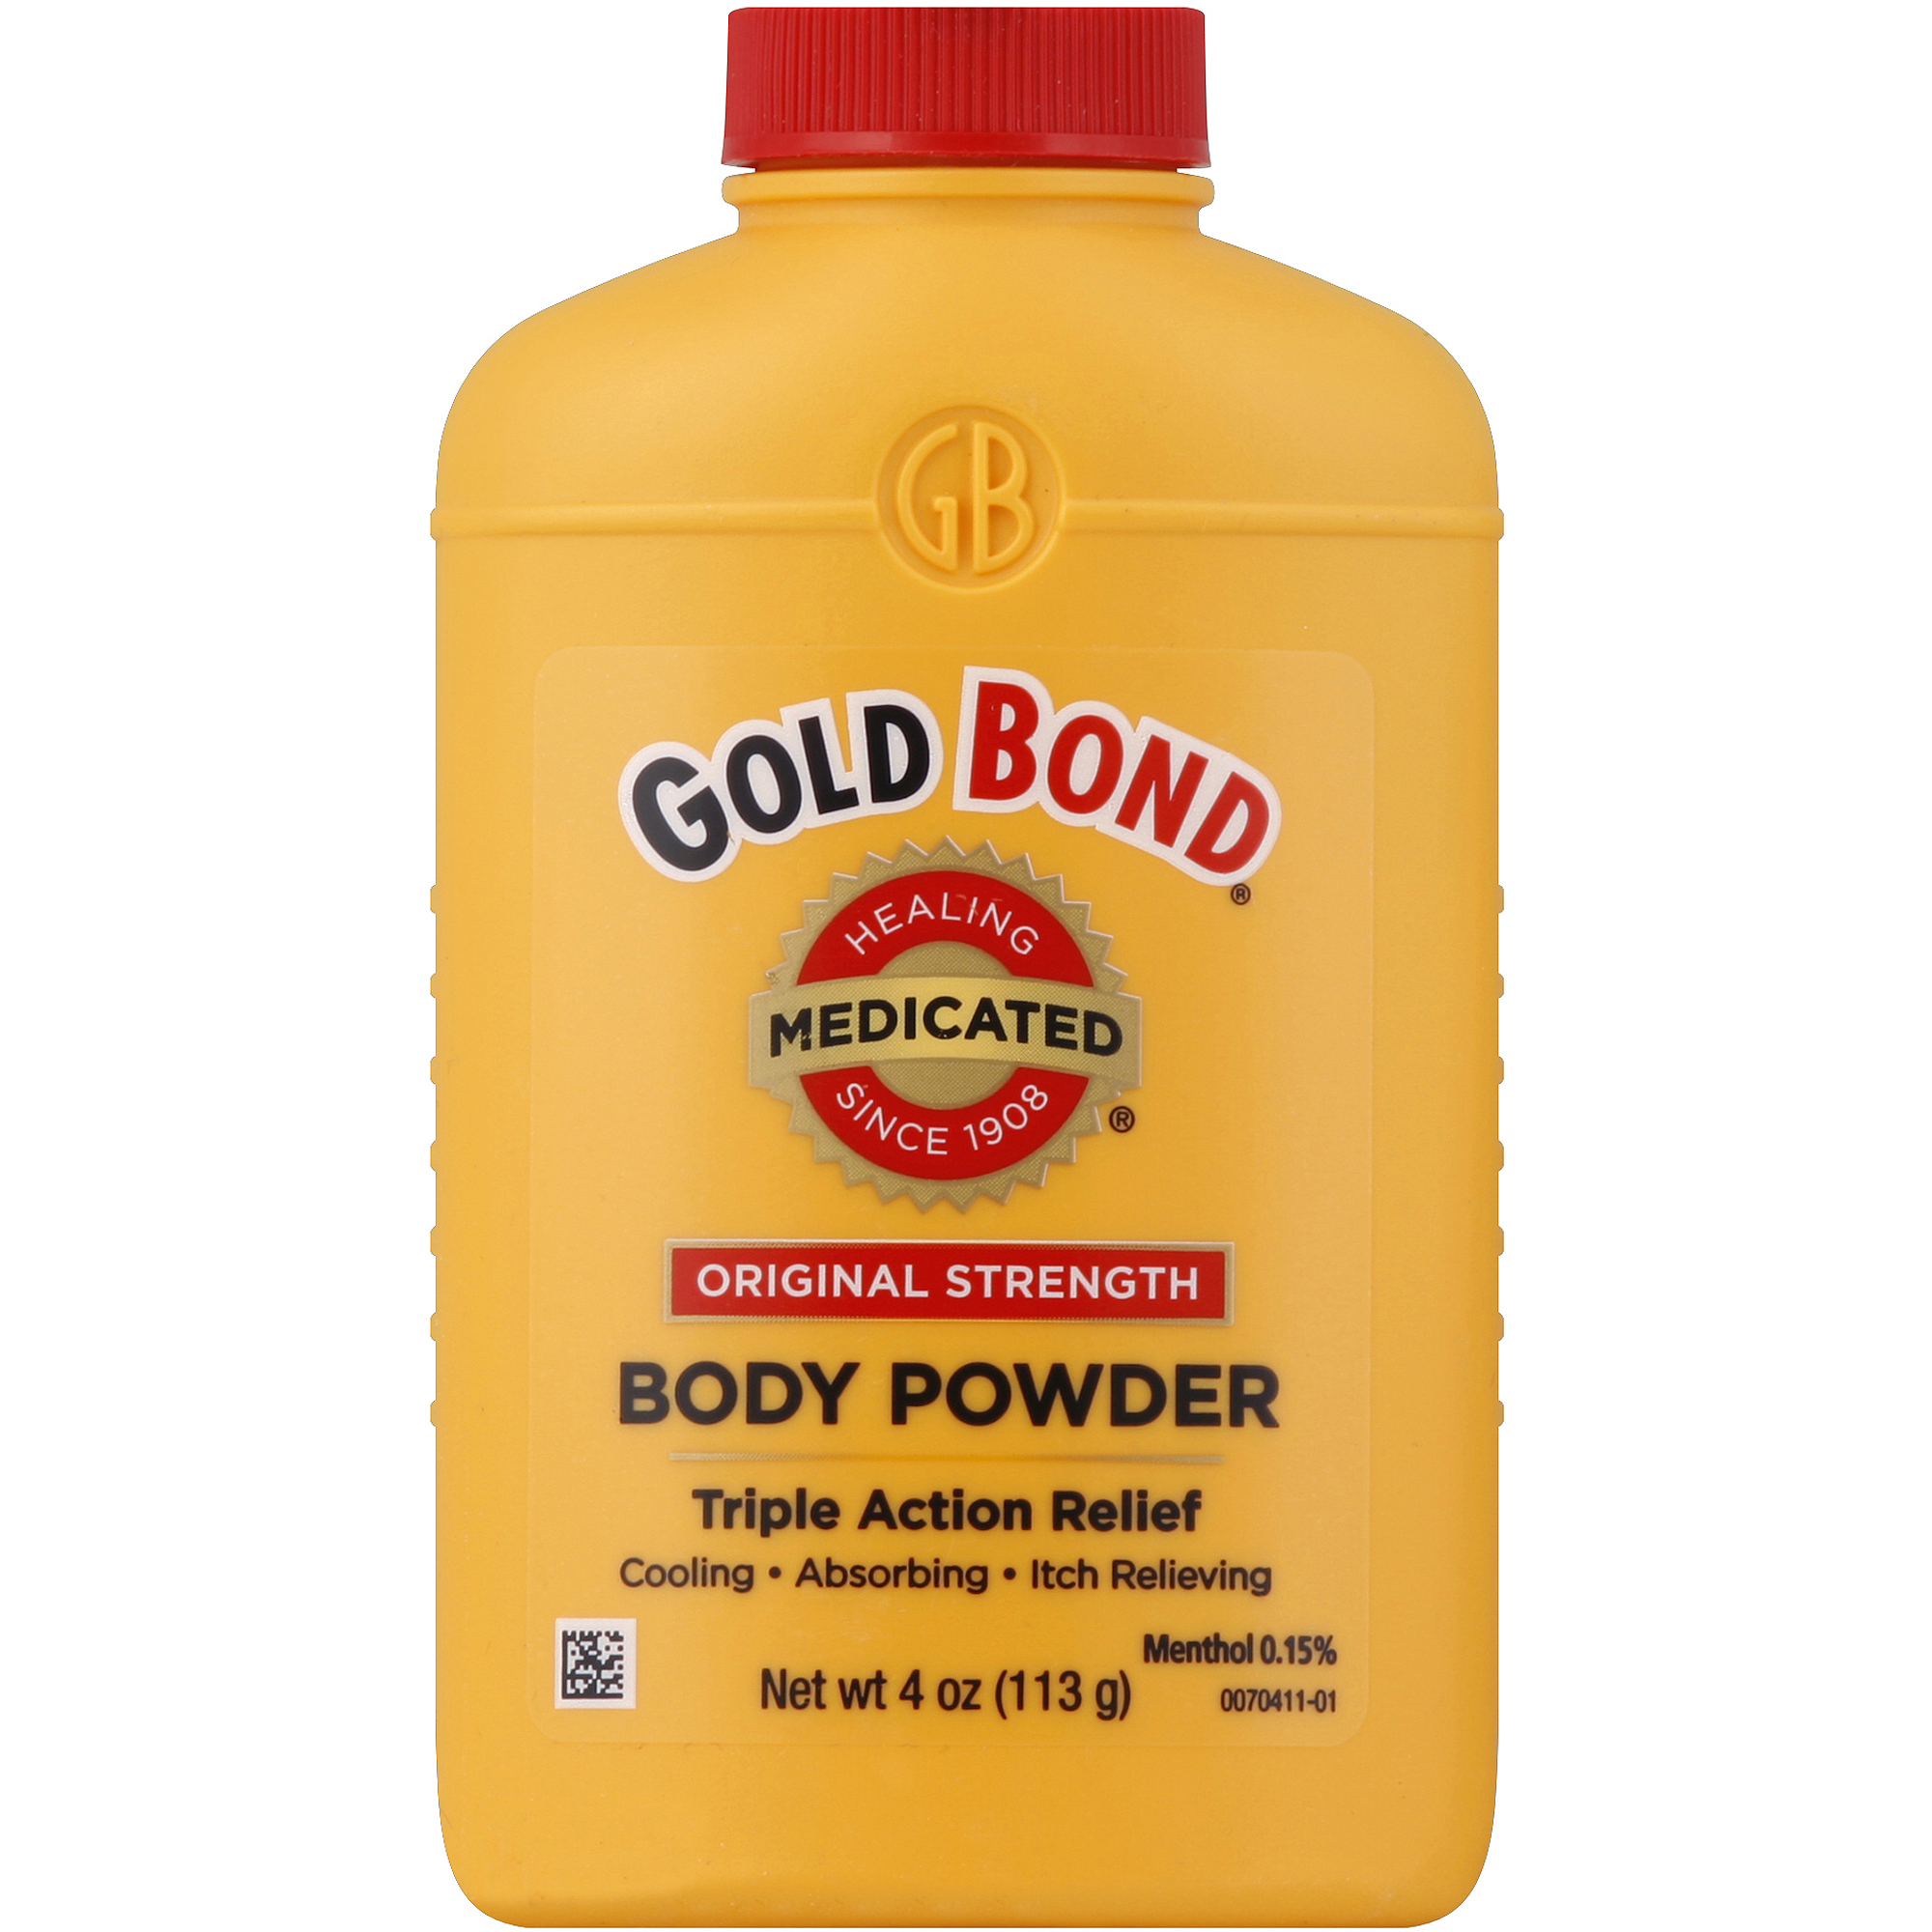 Gold Bond Original Strength Body Powder, 4 oz